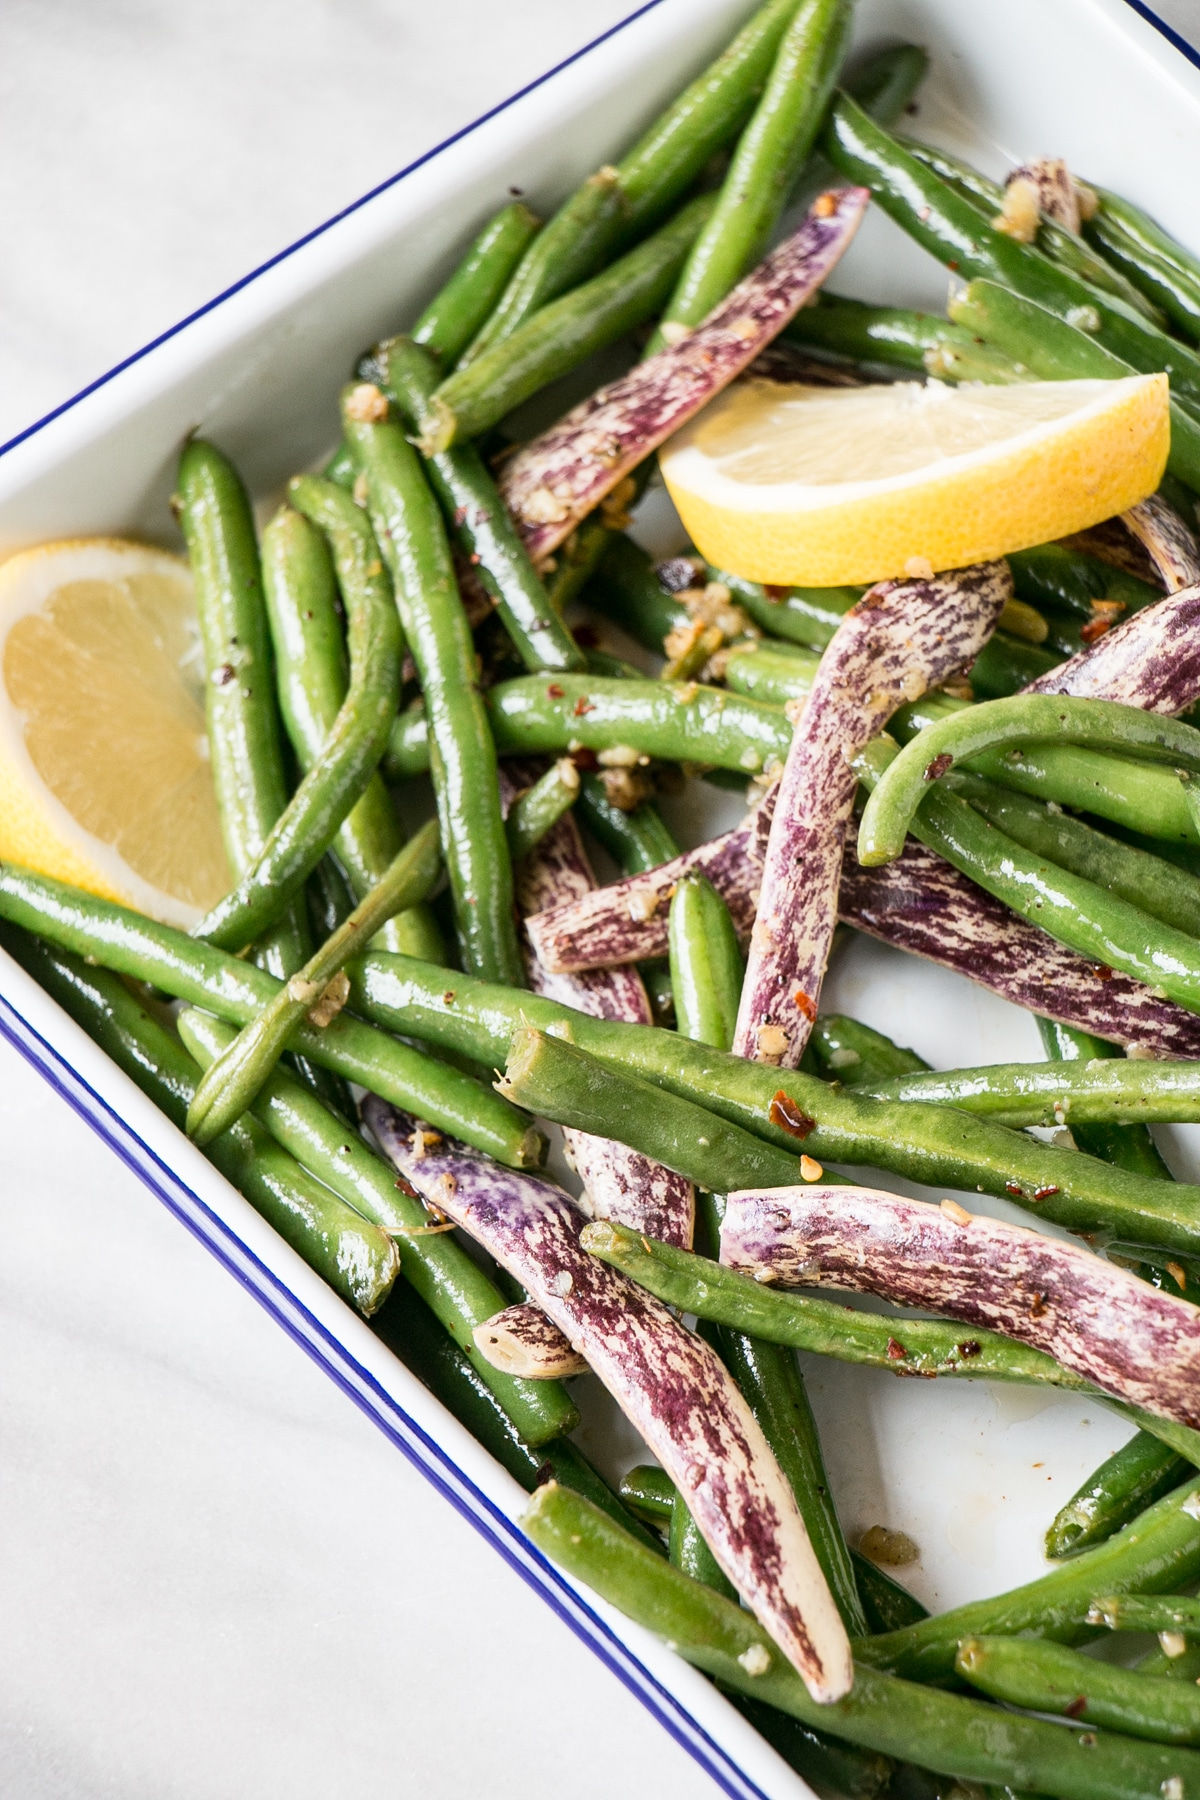 Garlicky Green Beans up close with lemon segements in a white serving tray.